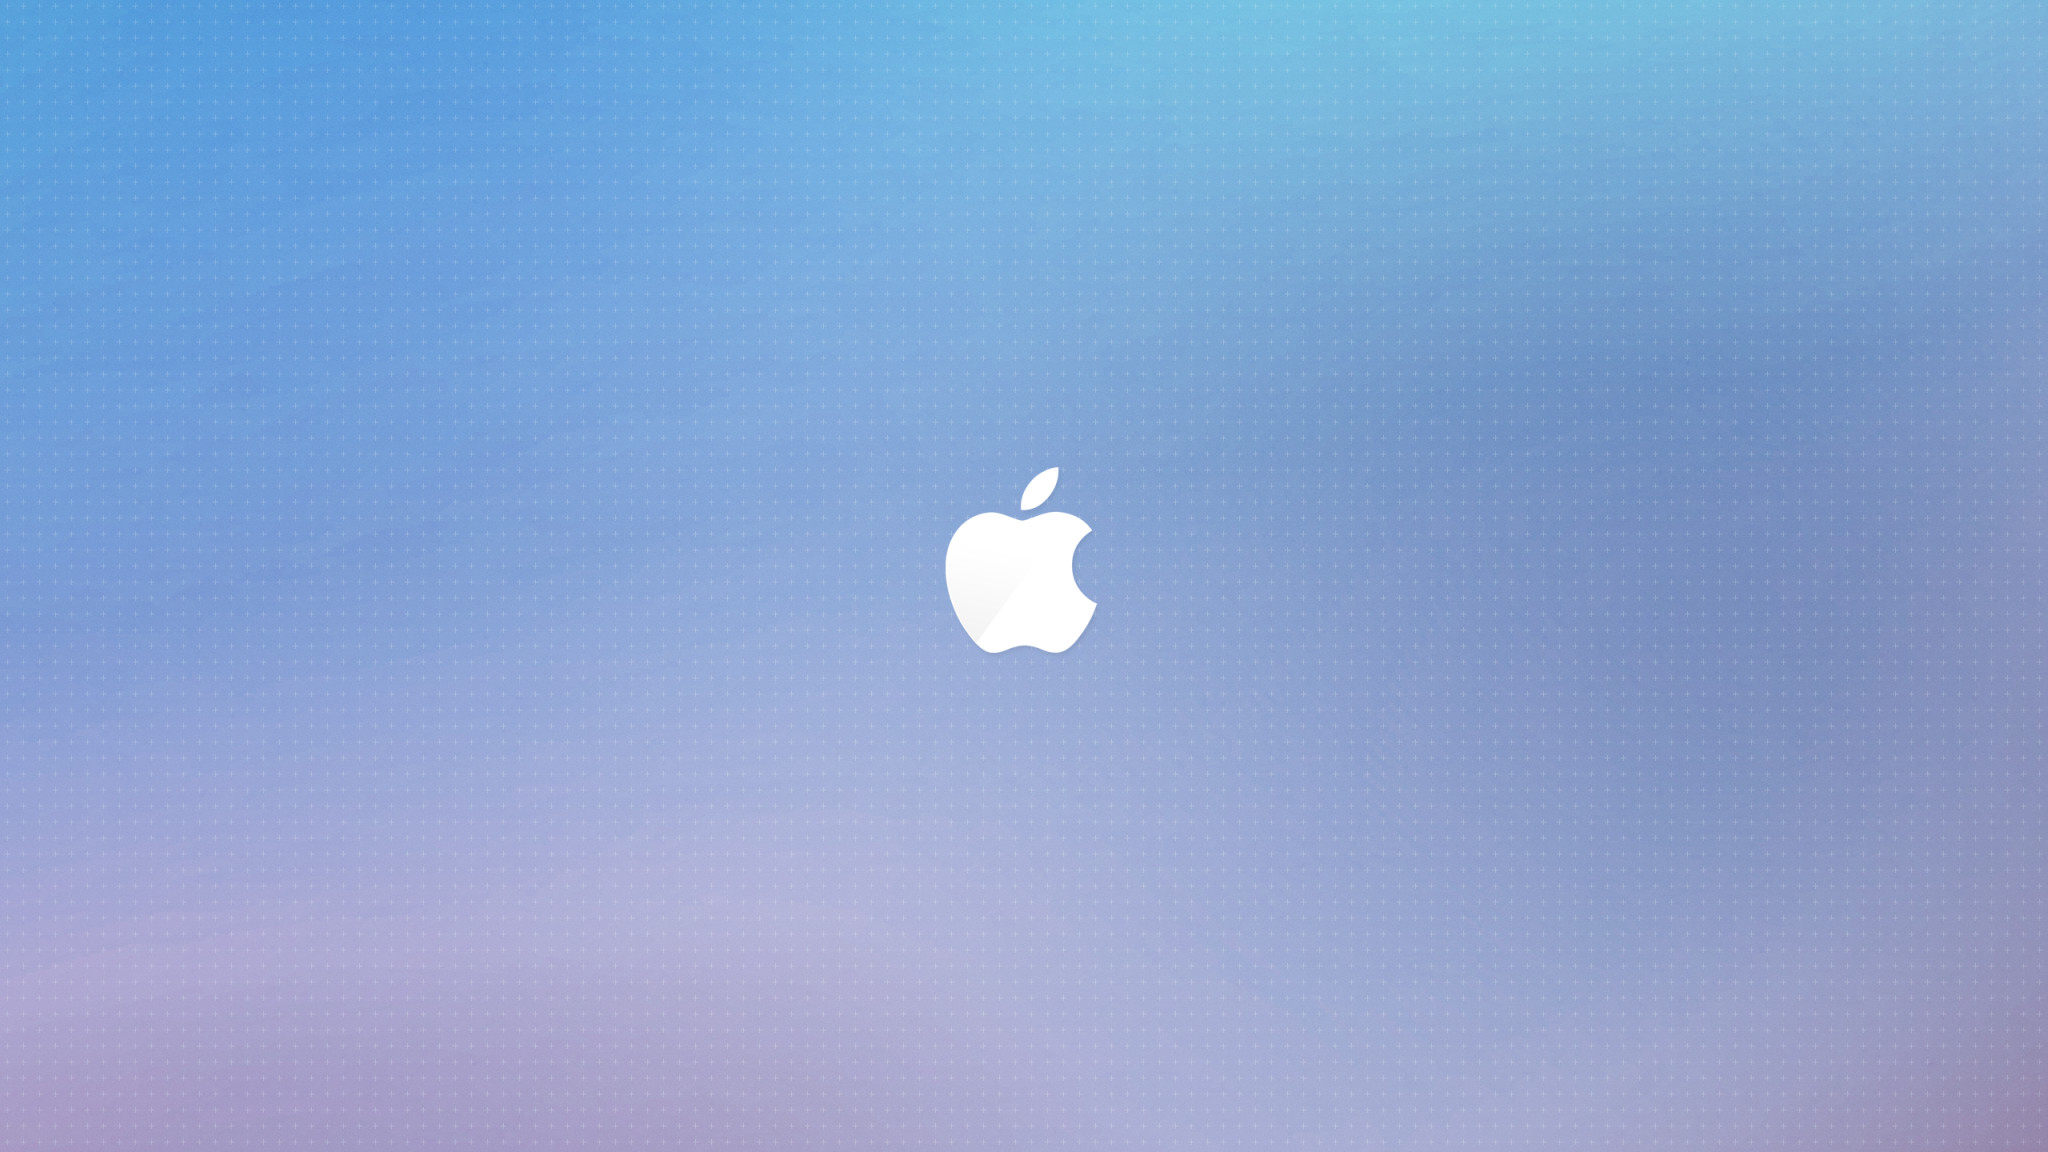 HD Apple Wallpapers 1080p 70 images 2048x1152